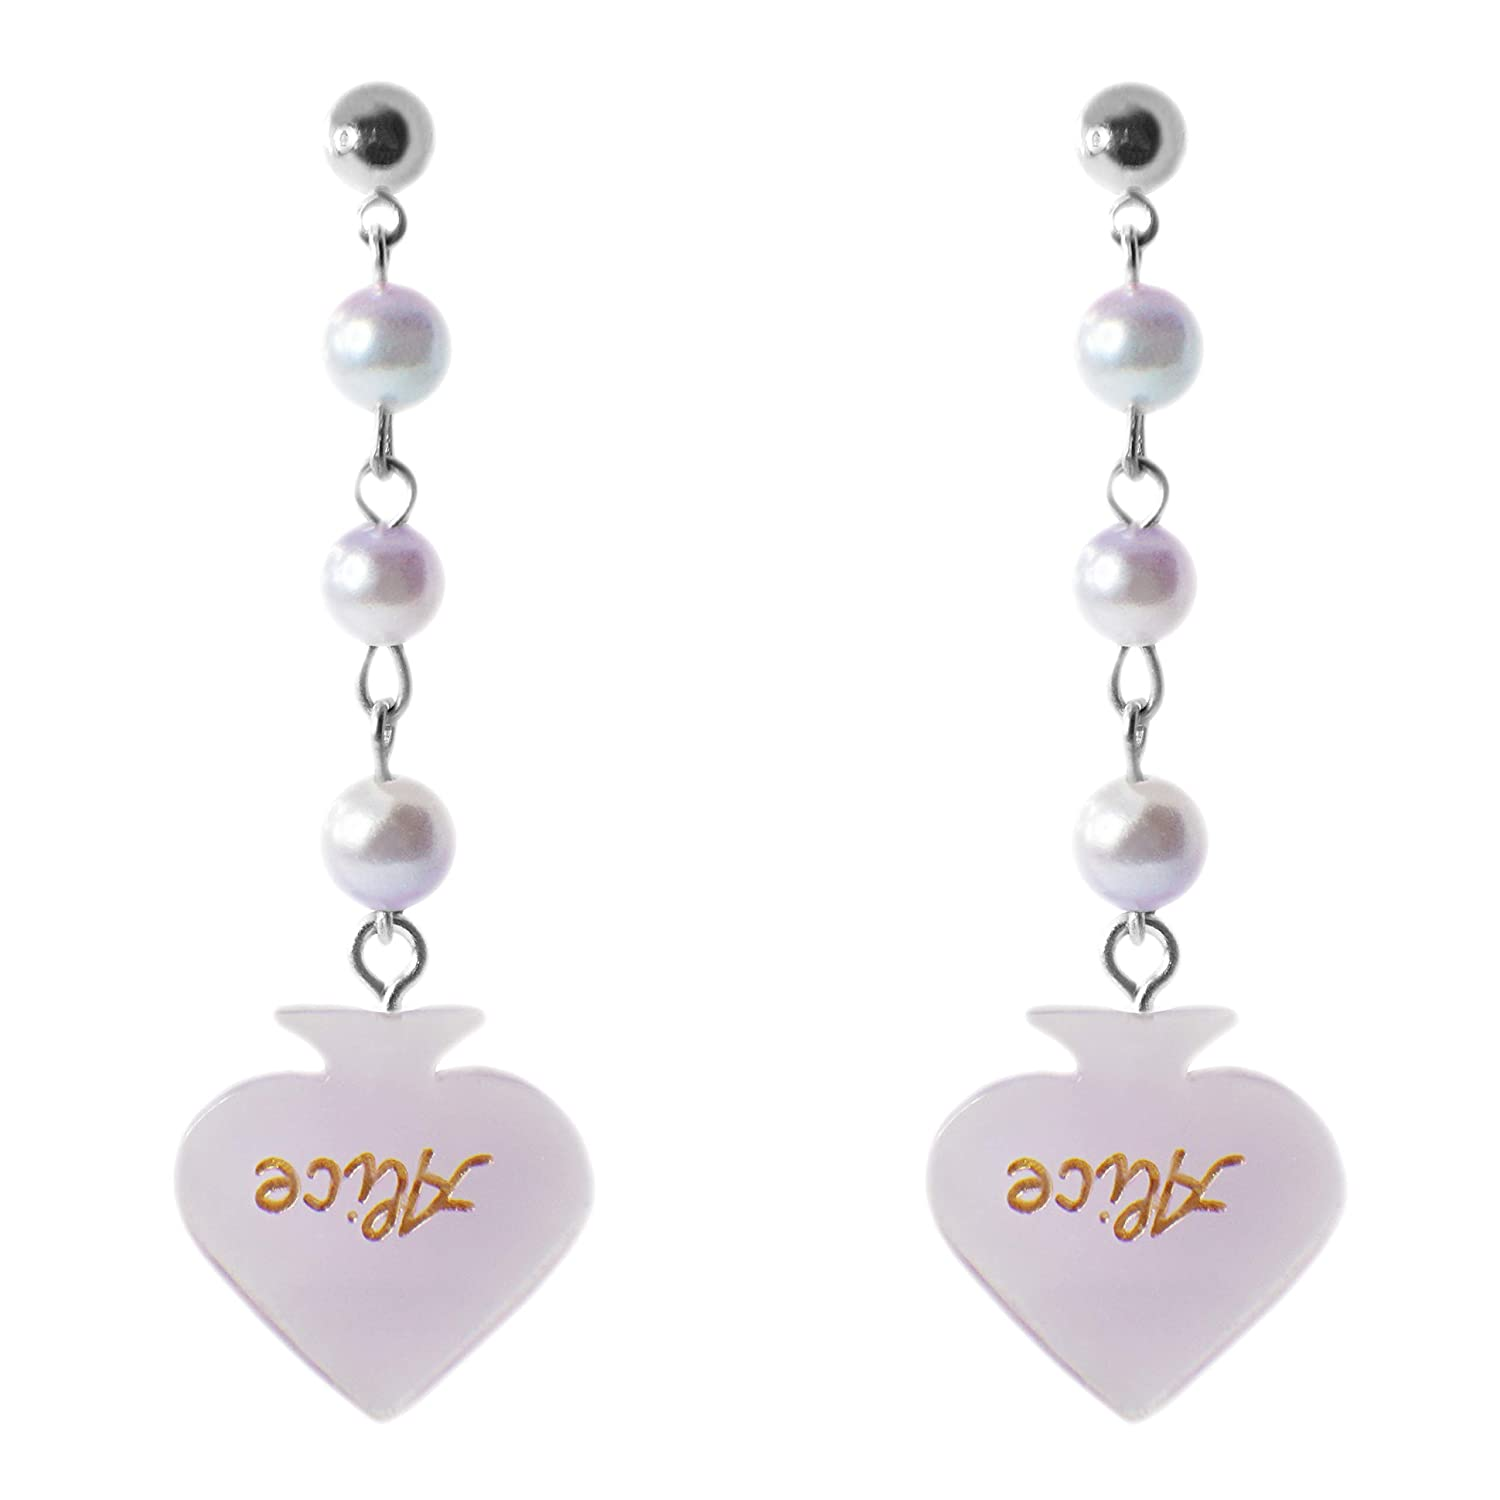 CUTIFICIAL Alice Pearl Earrings For Women and Girls Clip-on Exchange Available